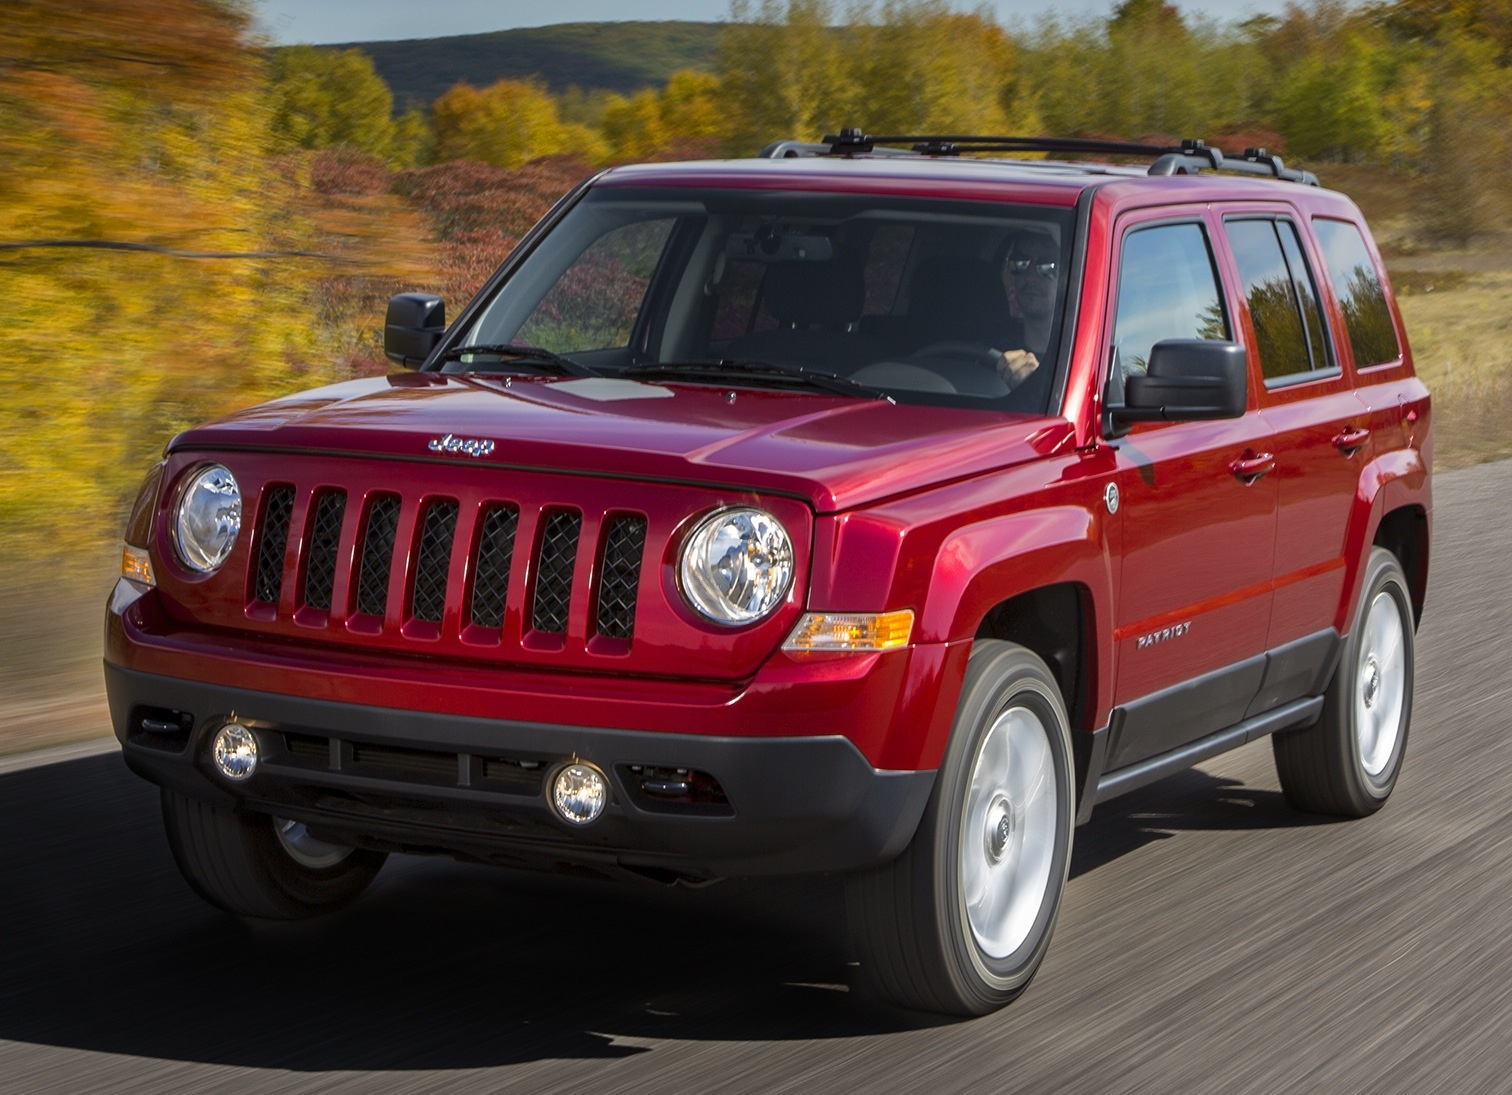 Cars jeep patriot 2015 #1